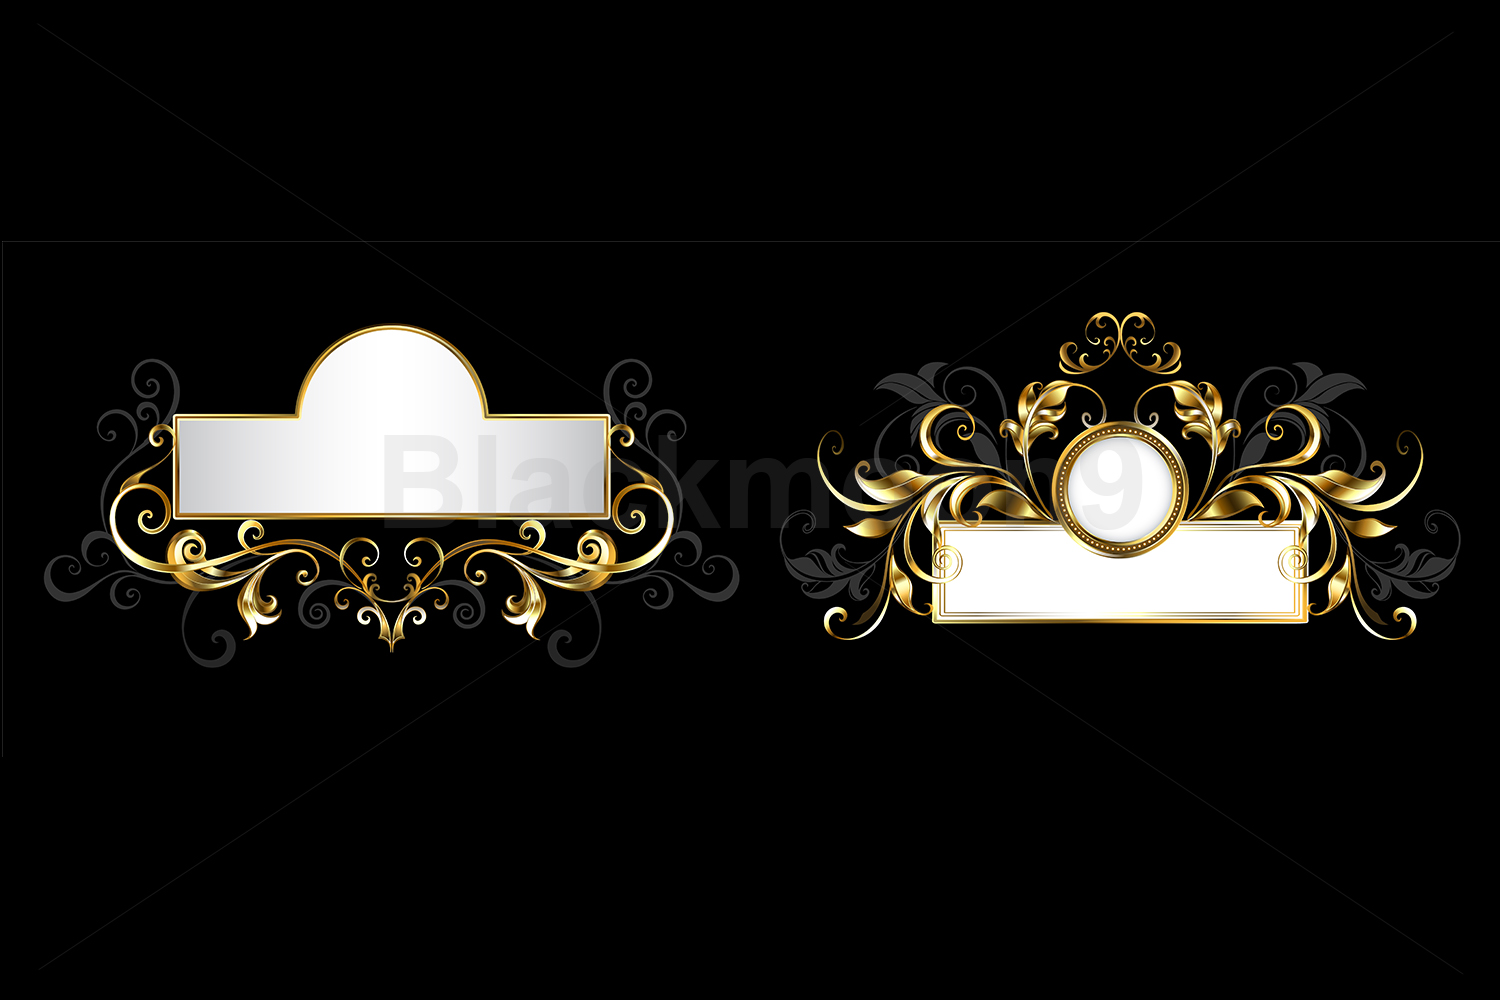 Two Antique Nameplates example image 1